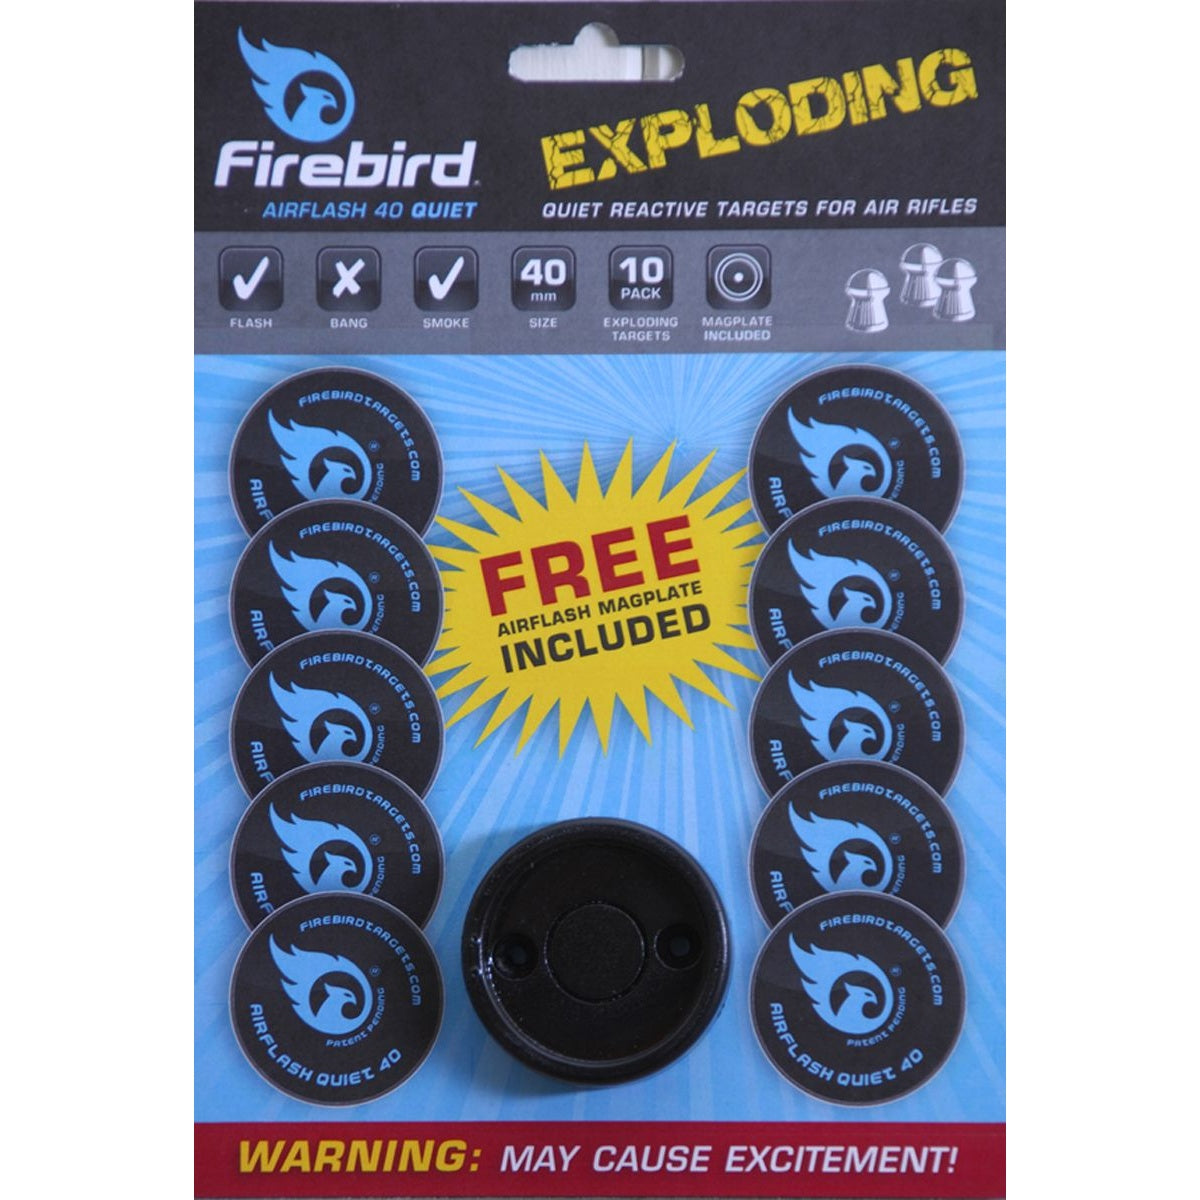 Firebird Airflash 40 Quiet Exploding Targets